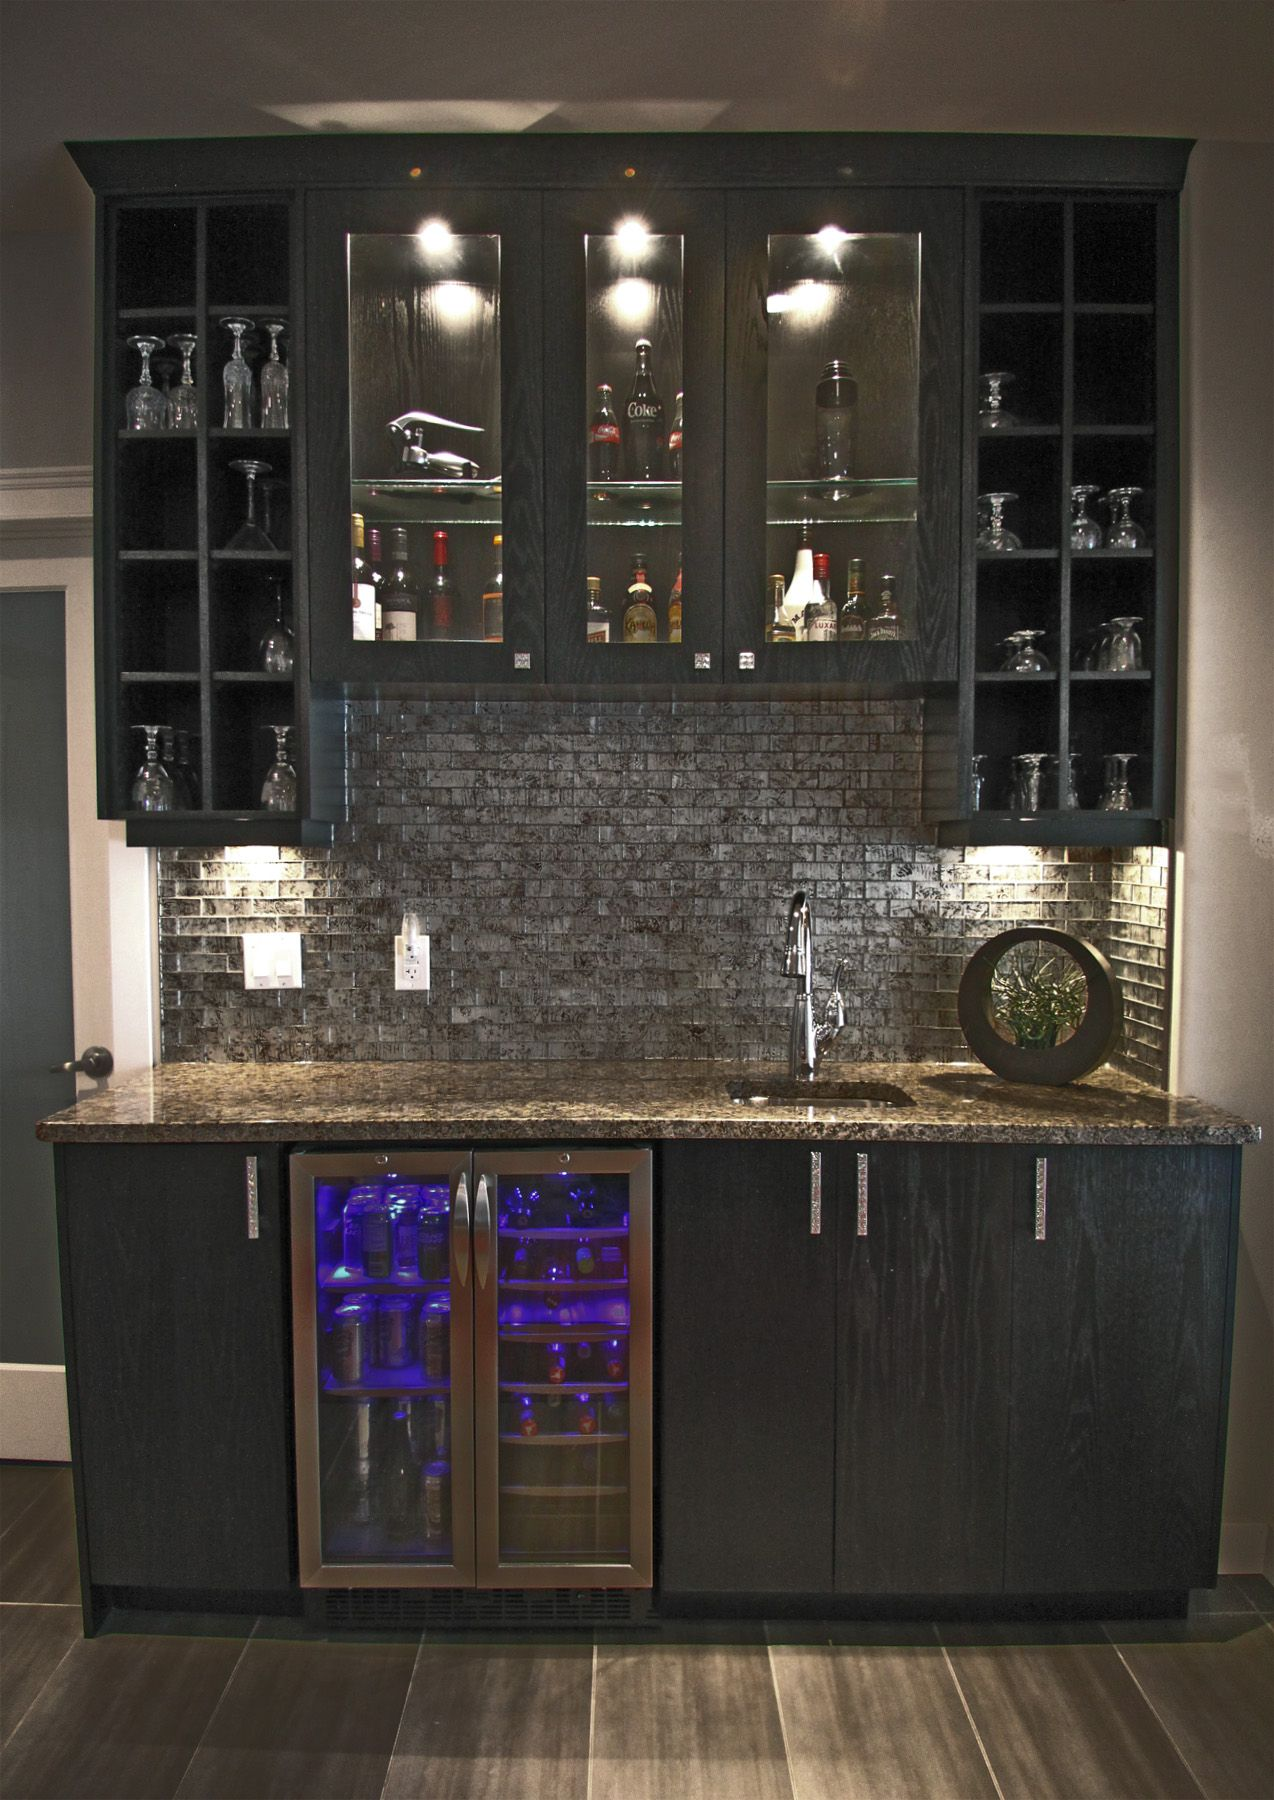 Home Wet Bar Designs W Gl Backsplash Built In Counter Height Beverage Cooler Stainless Steel